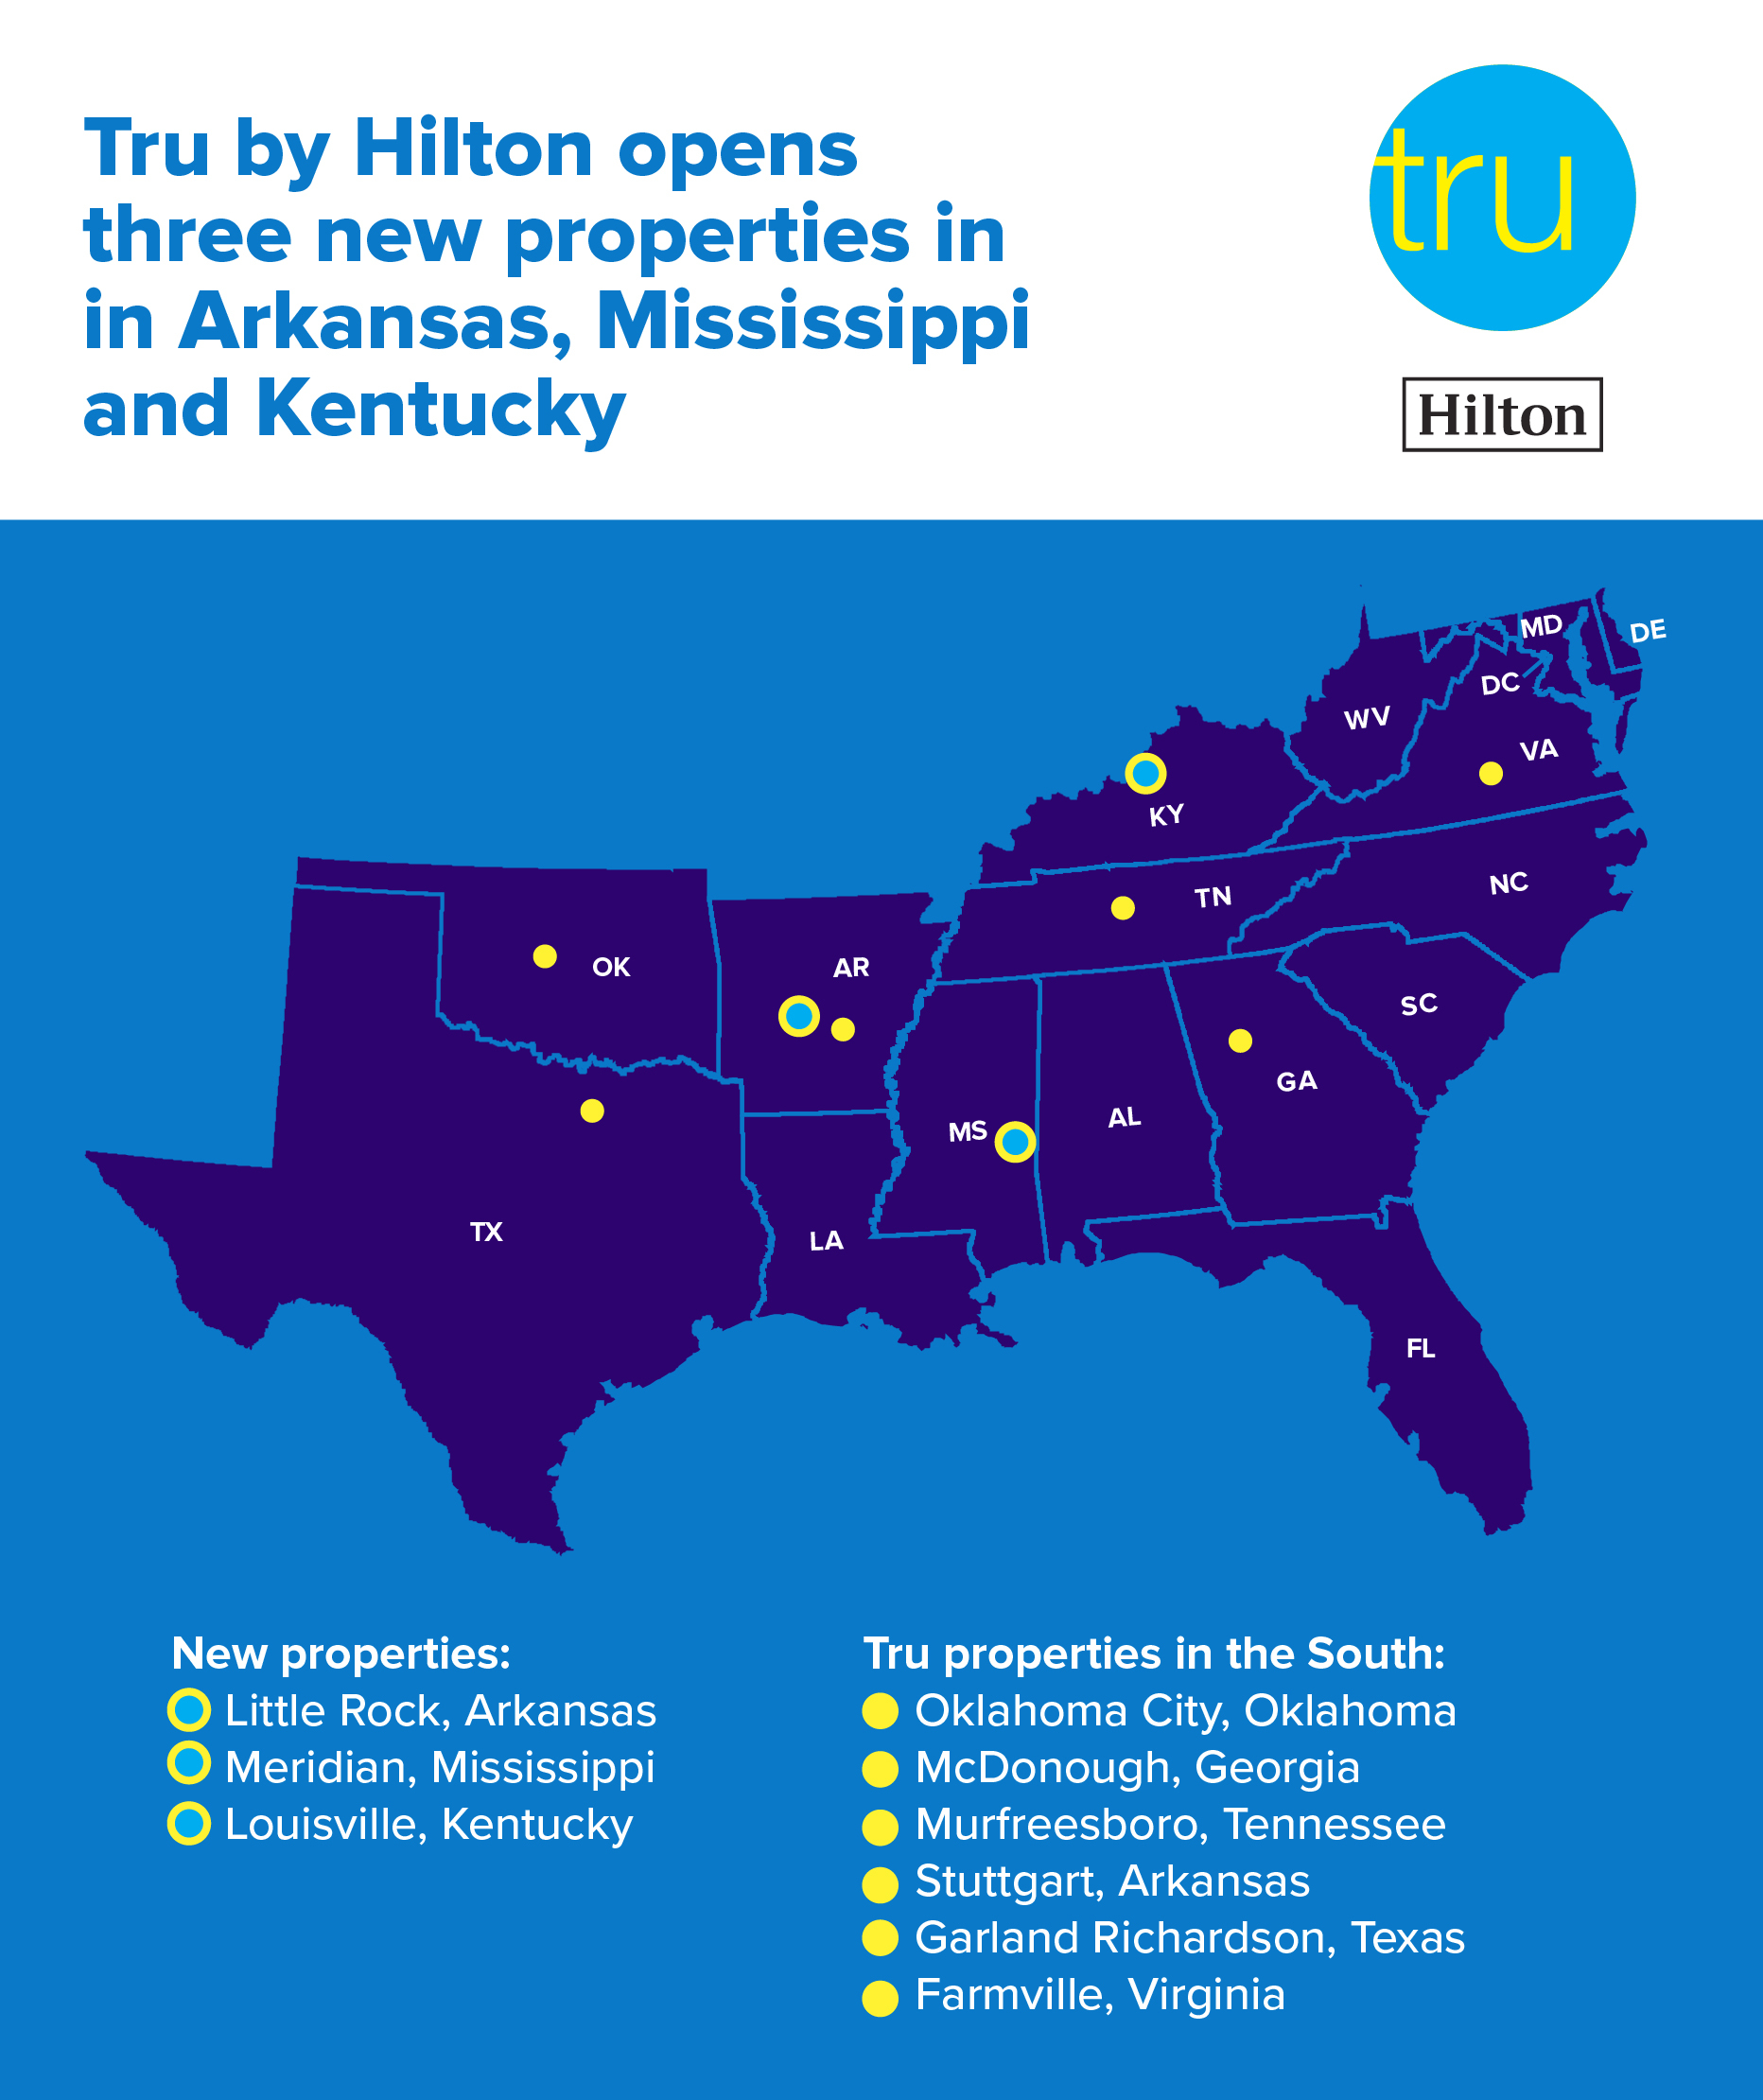 Tru By Hilton Expands Presence Across The South With Three New - Hilton properties map